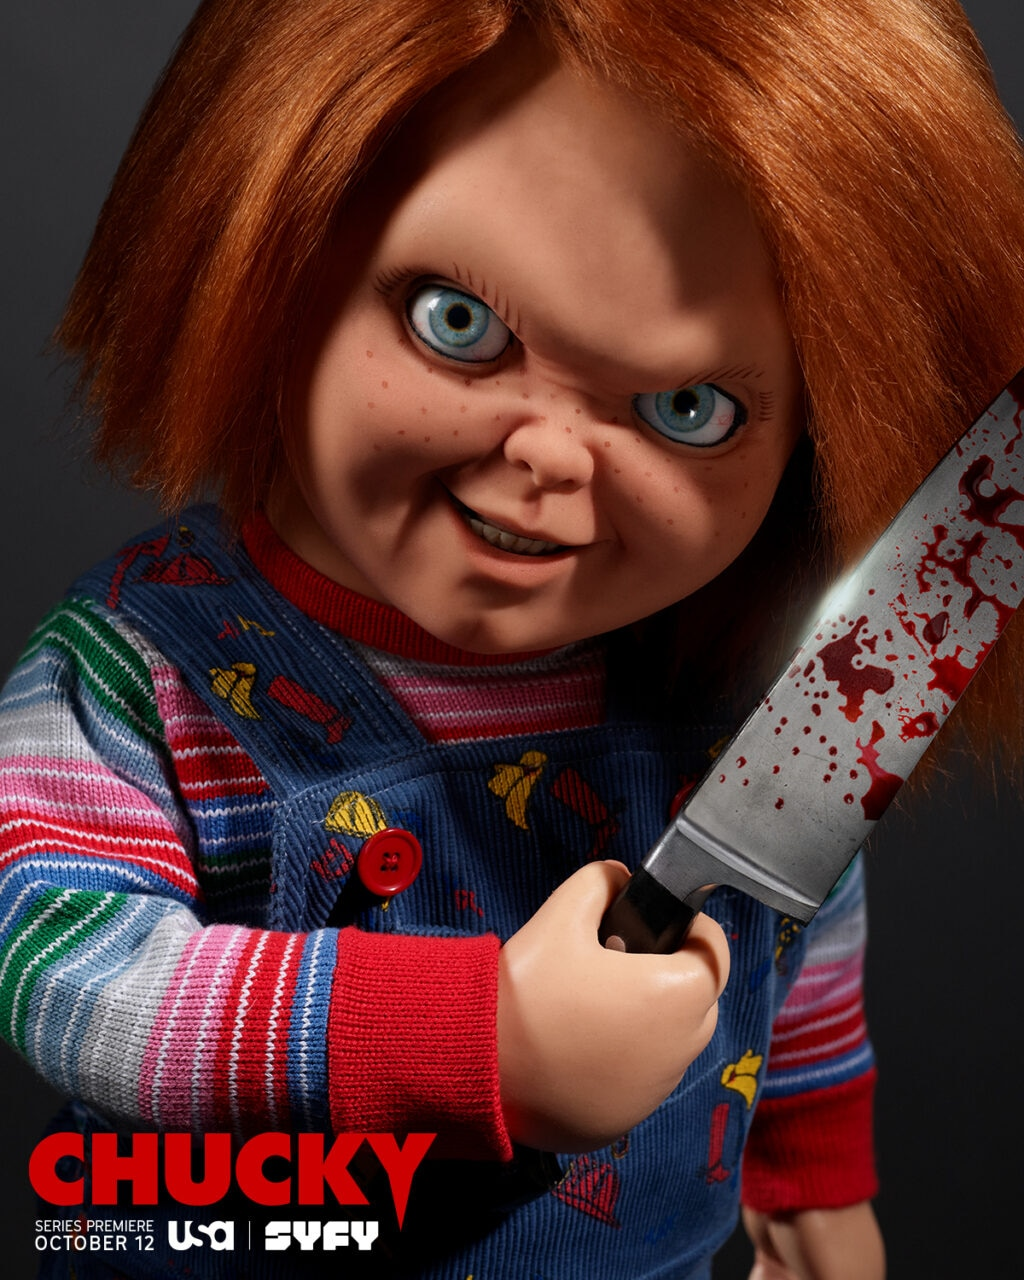 Chucky 1 1024x1280 - Are You an Artist and a Fan Of CHUCKY? Submit Your Artwork For A Chance To Design An Official Poster!